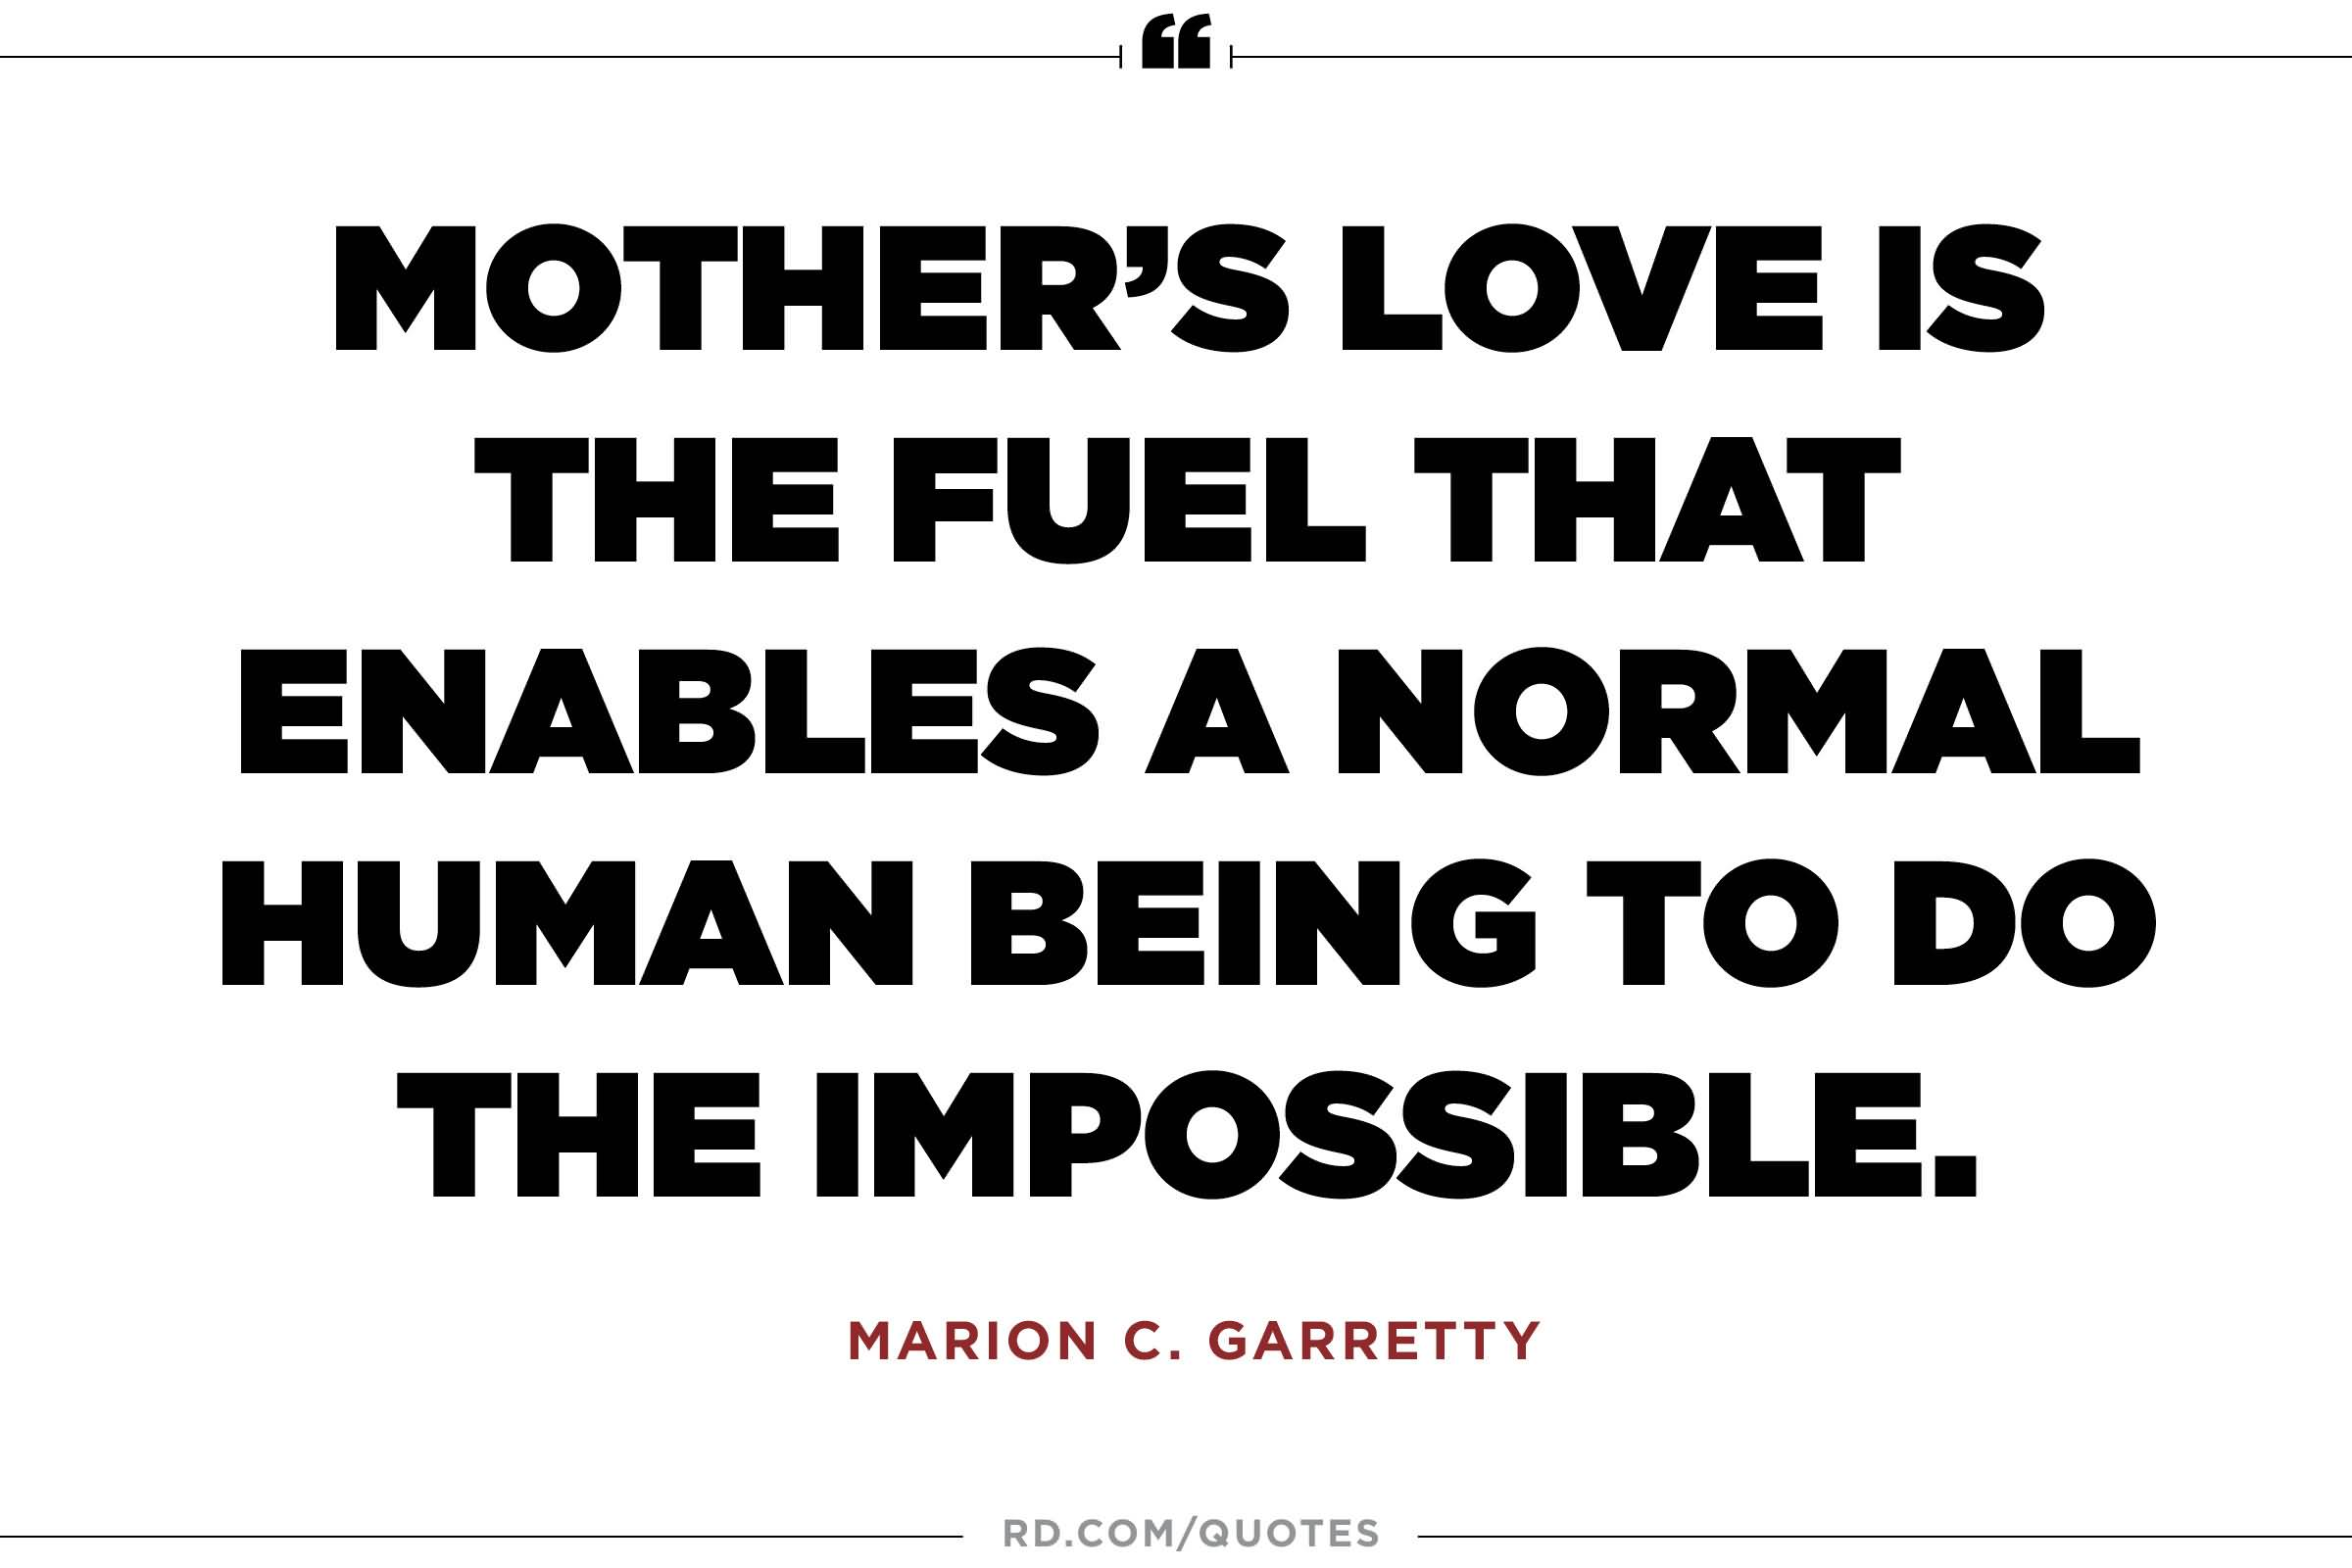 Quotes About A Mother's Love Mothers Love Quotes 15  Quotesbae